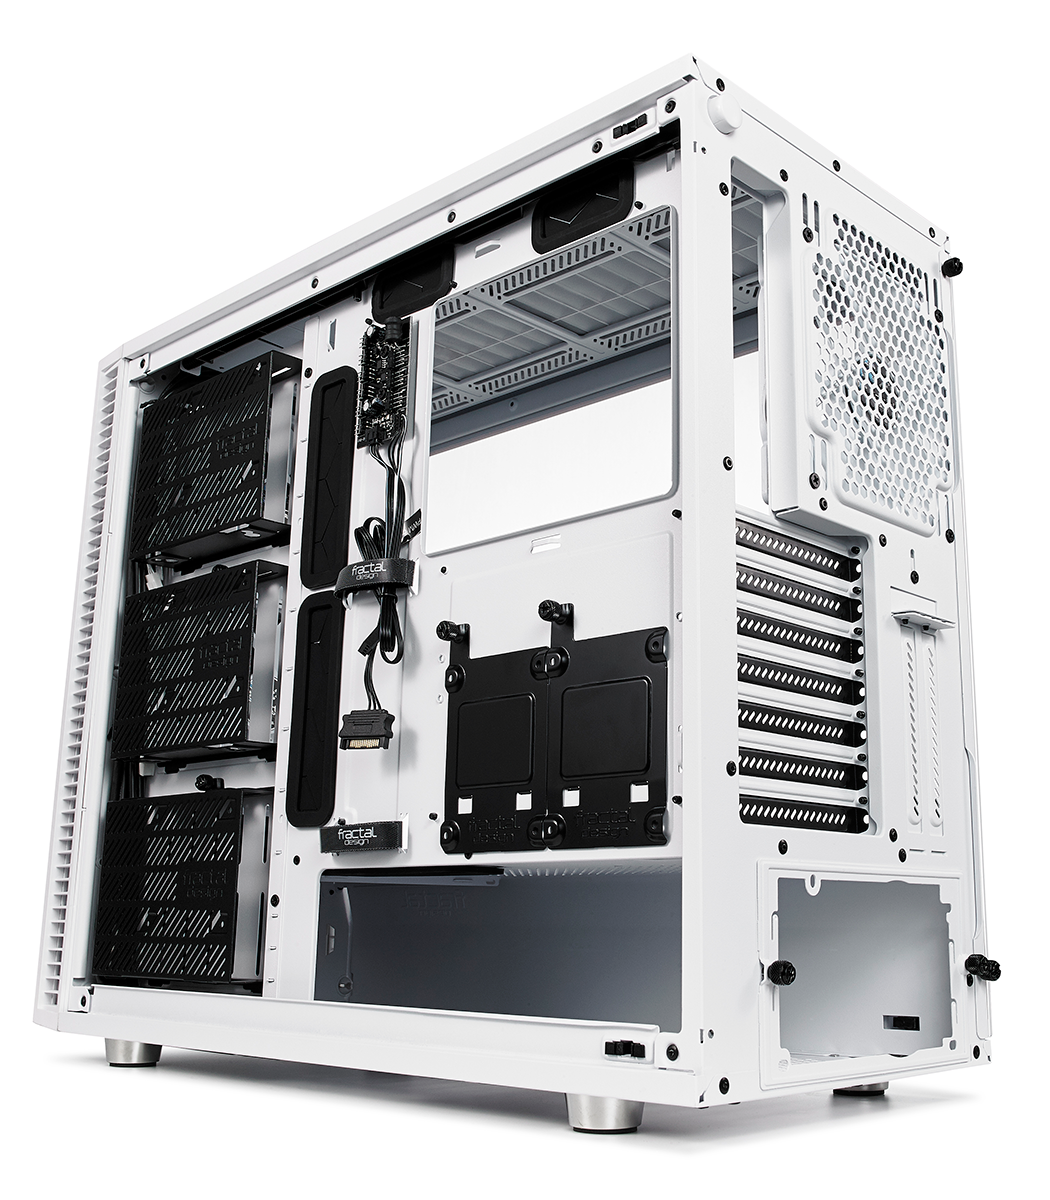 Review Fractal Design Define S2 Chassis Hexus Net,Ontario College Of Art And Design